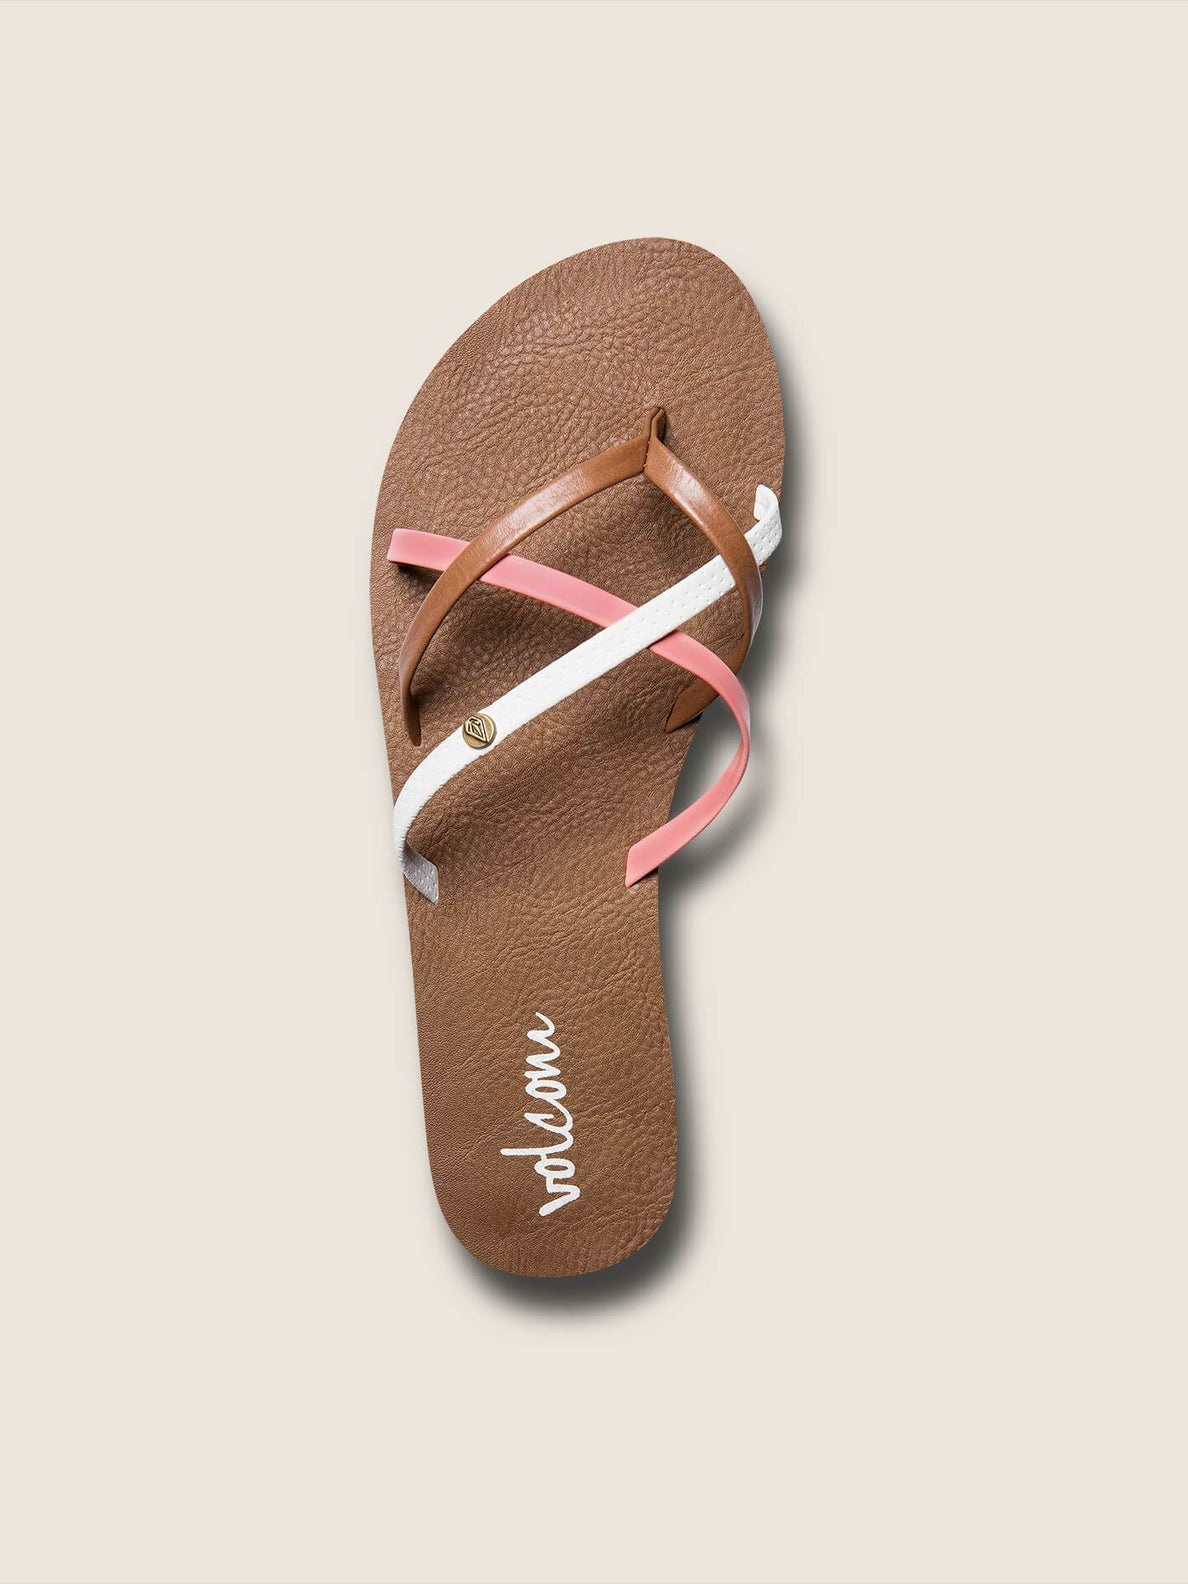 New School Sandals In Coral, Alternate View